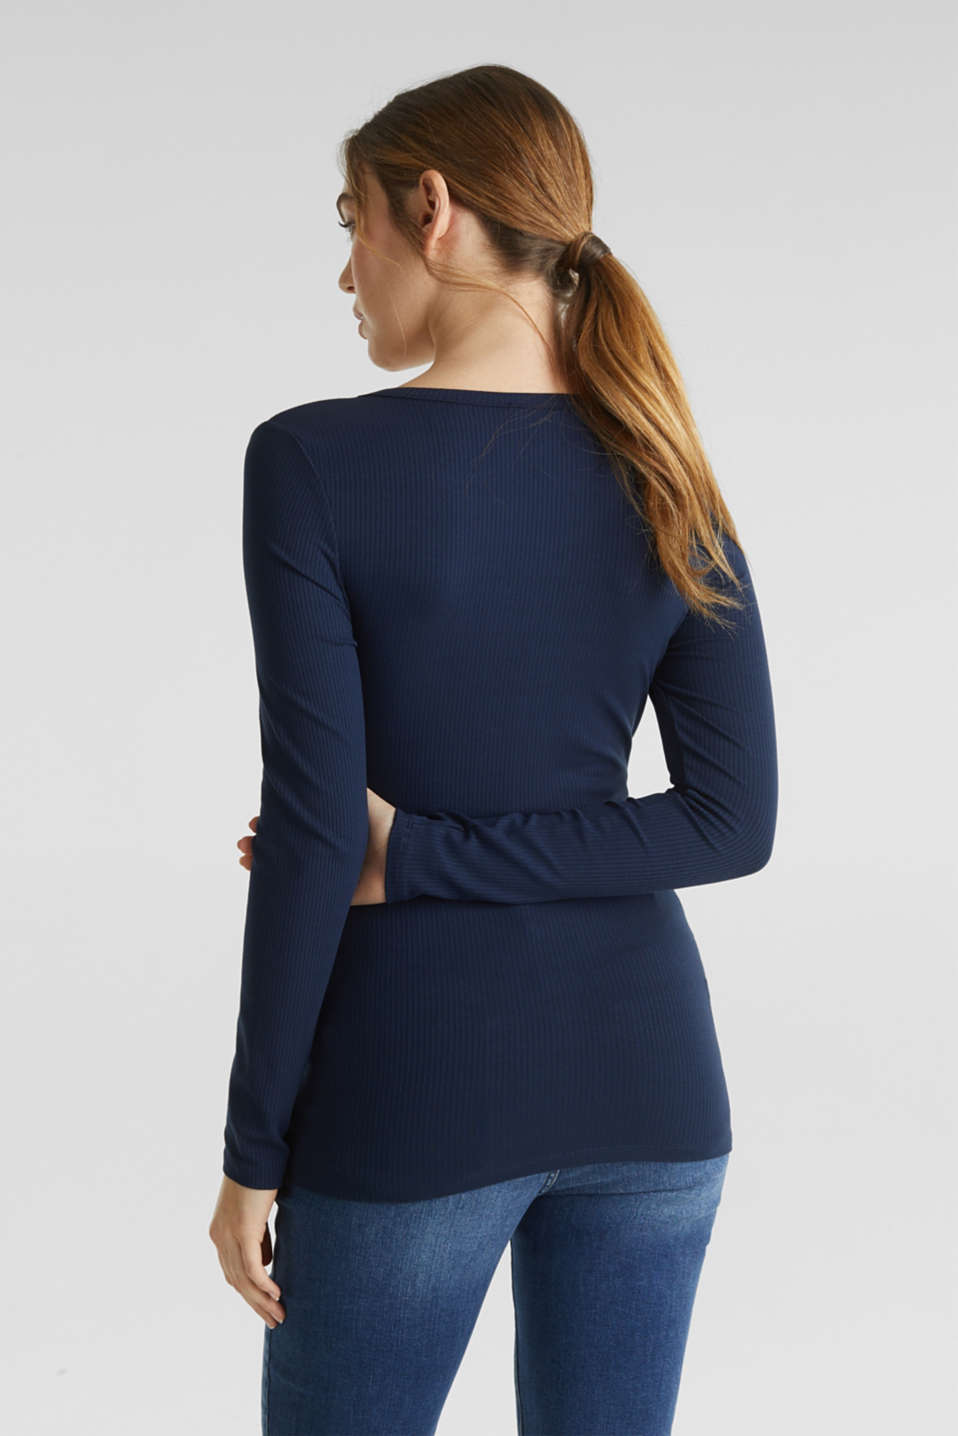 Ribbed long sleeve top with a button placket and stretch for comfort, LCNIGHT BLUE, detail image number 3